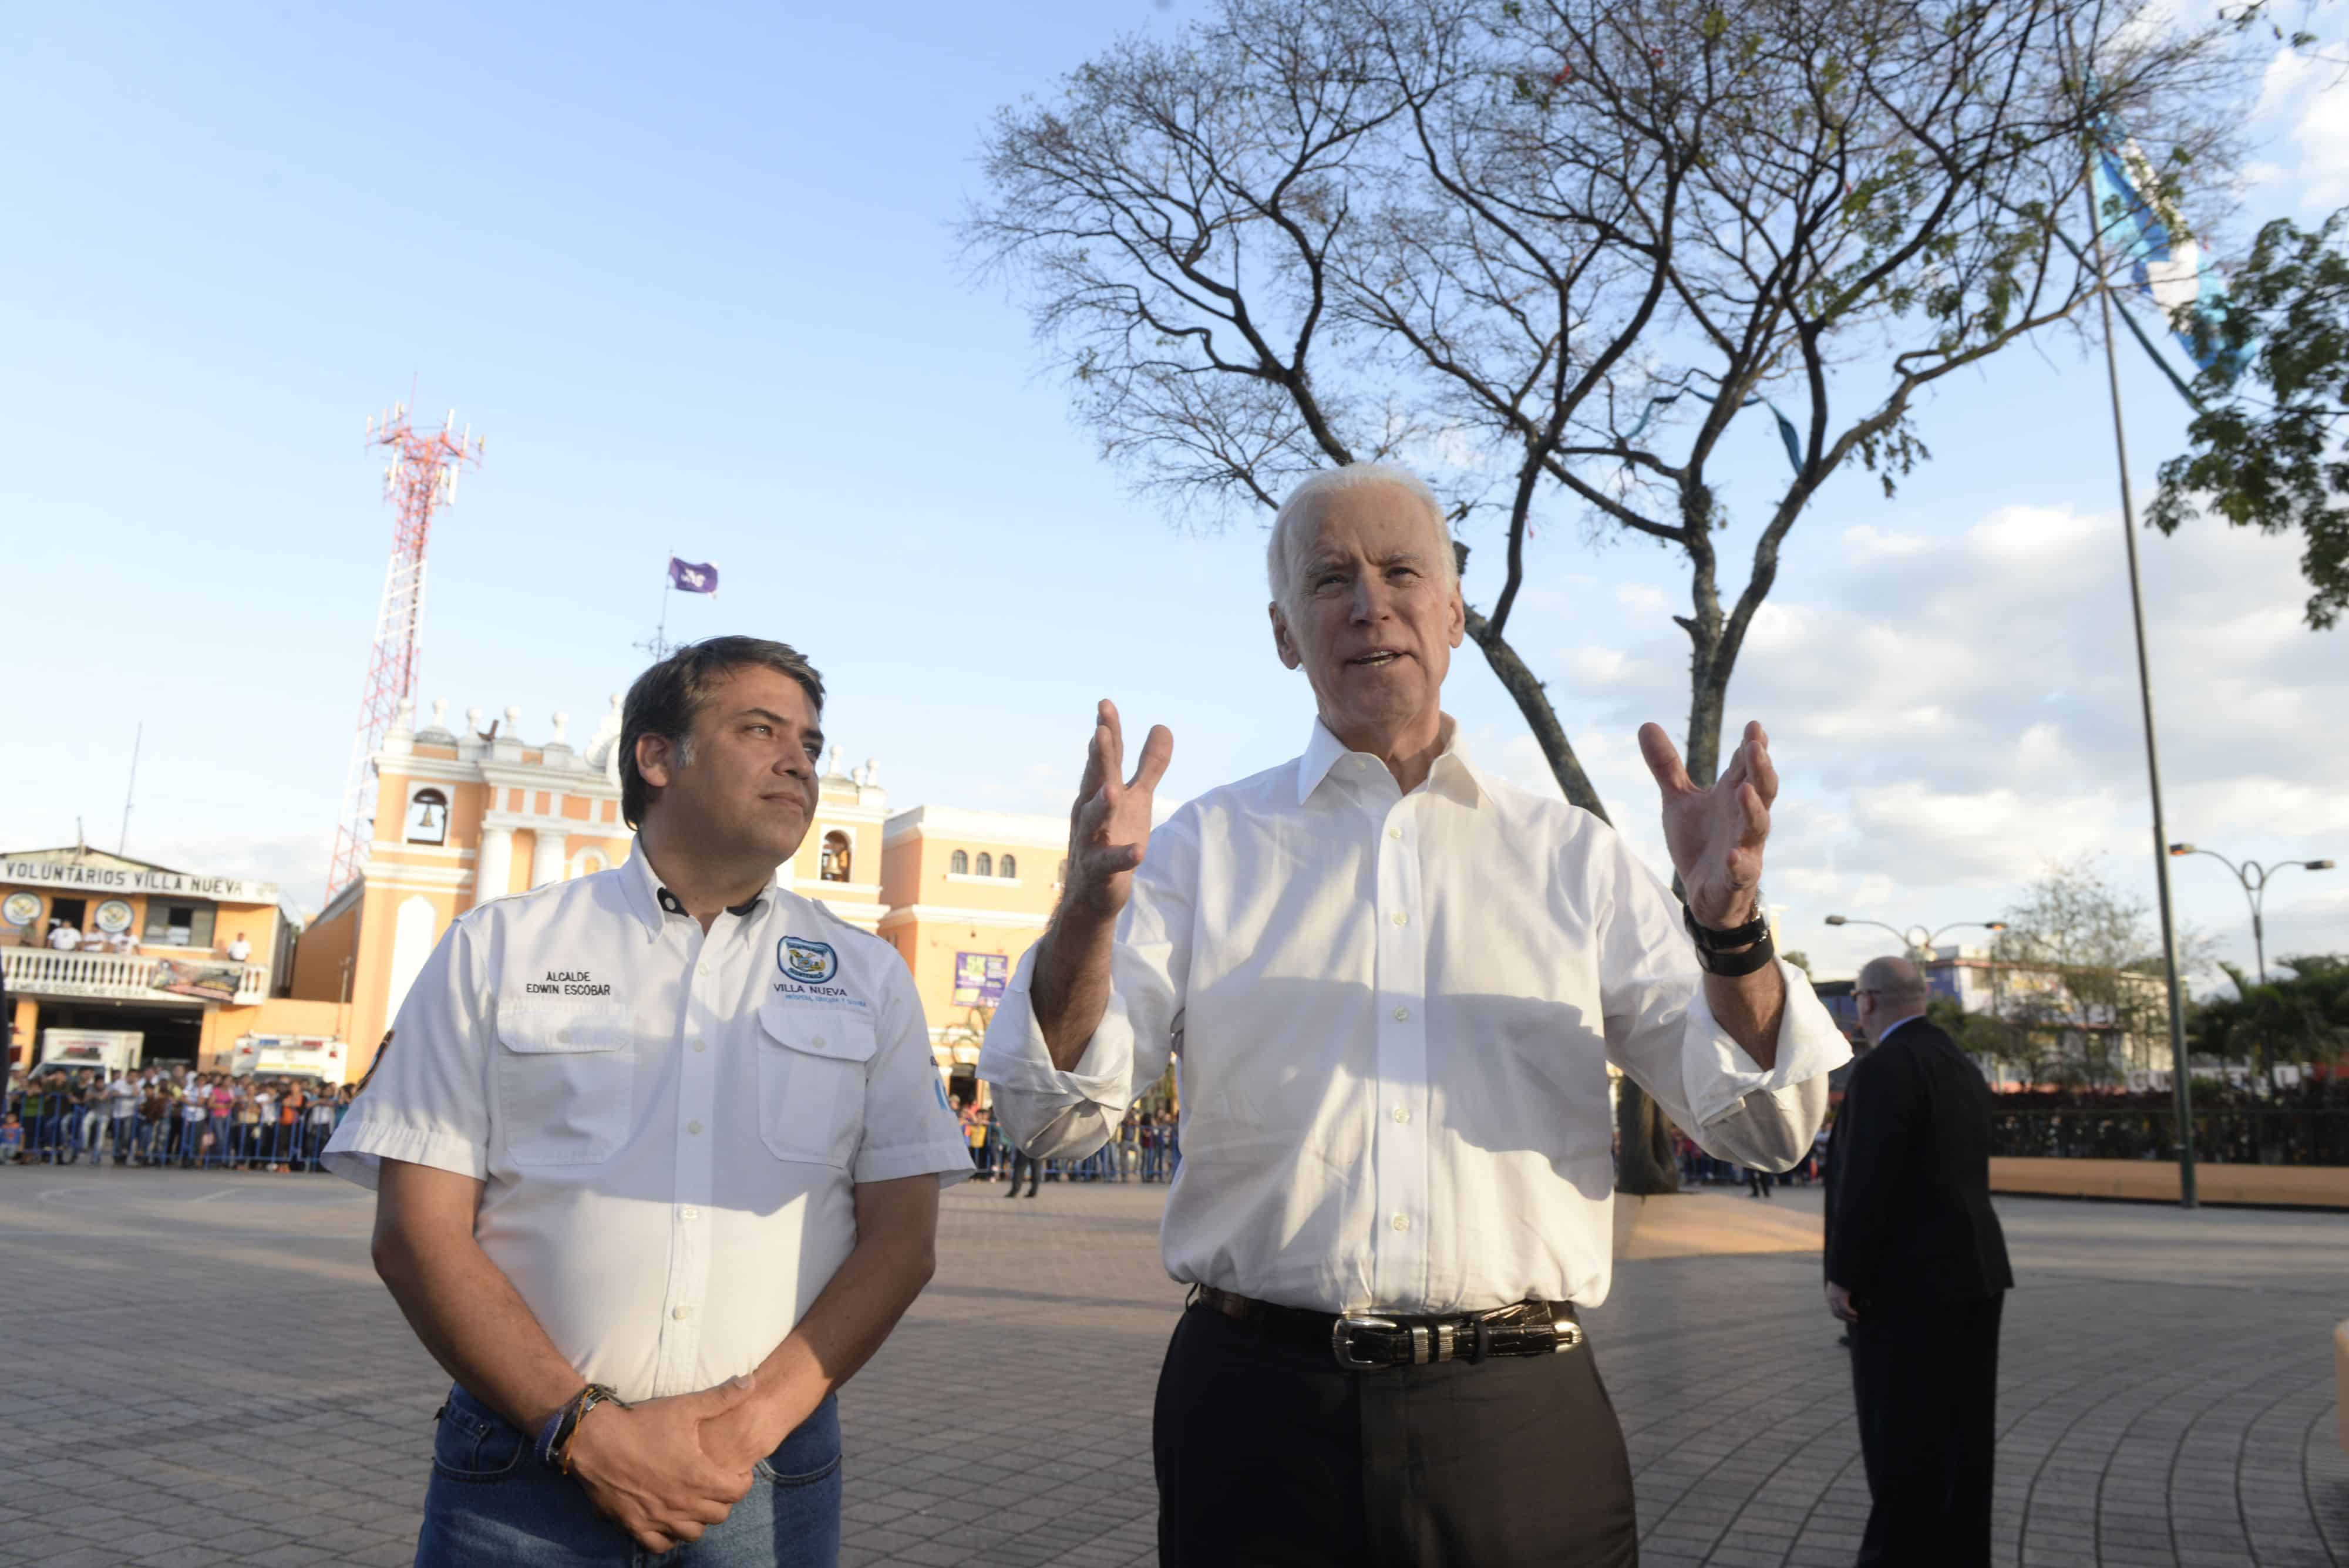 U.S. Vice-President Joe Biden (R) speaks with Edwin Escobar (L), the mayor of Villa Nueva, a suburb outside of Guatemala City, on March 3, 2015.